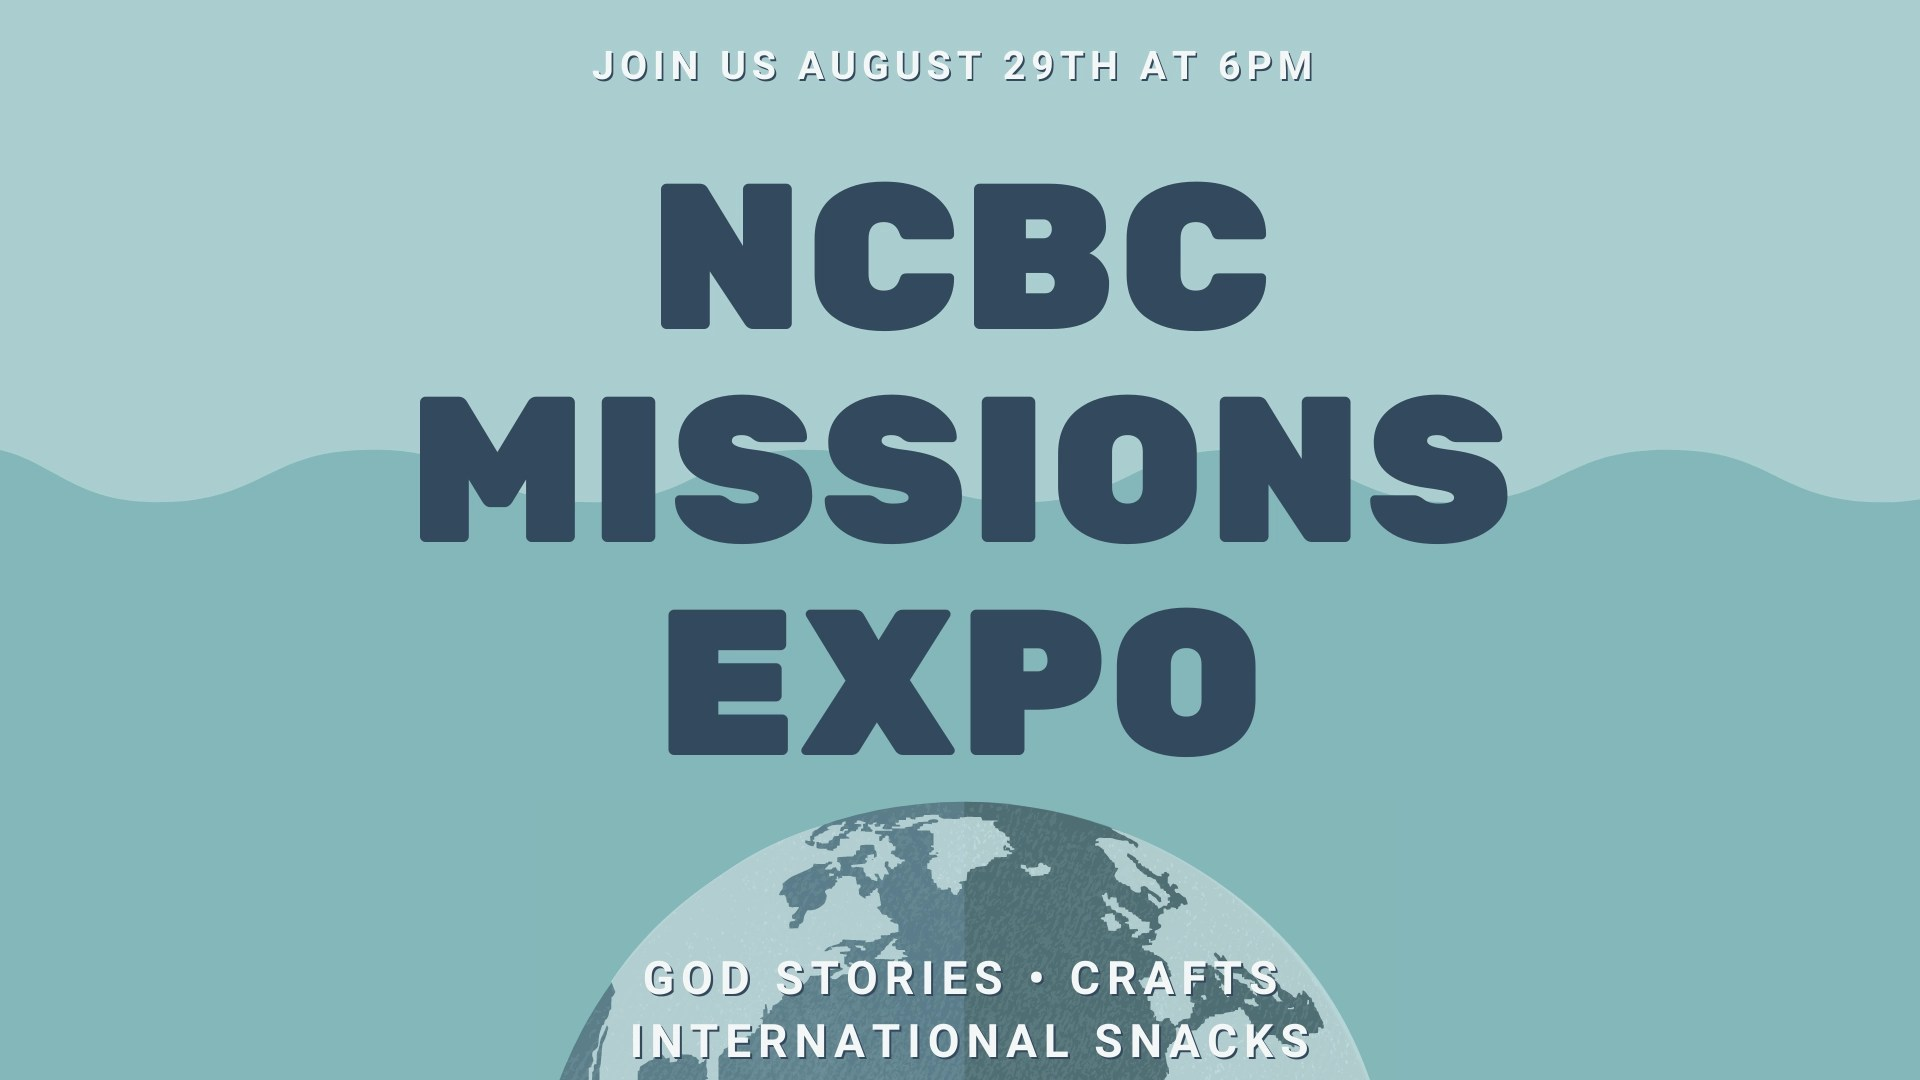 NCBC-Mission Expo-6pm